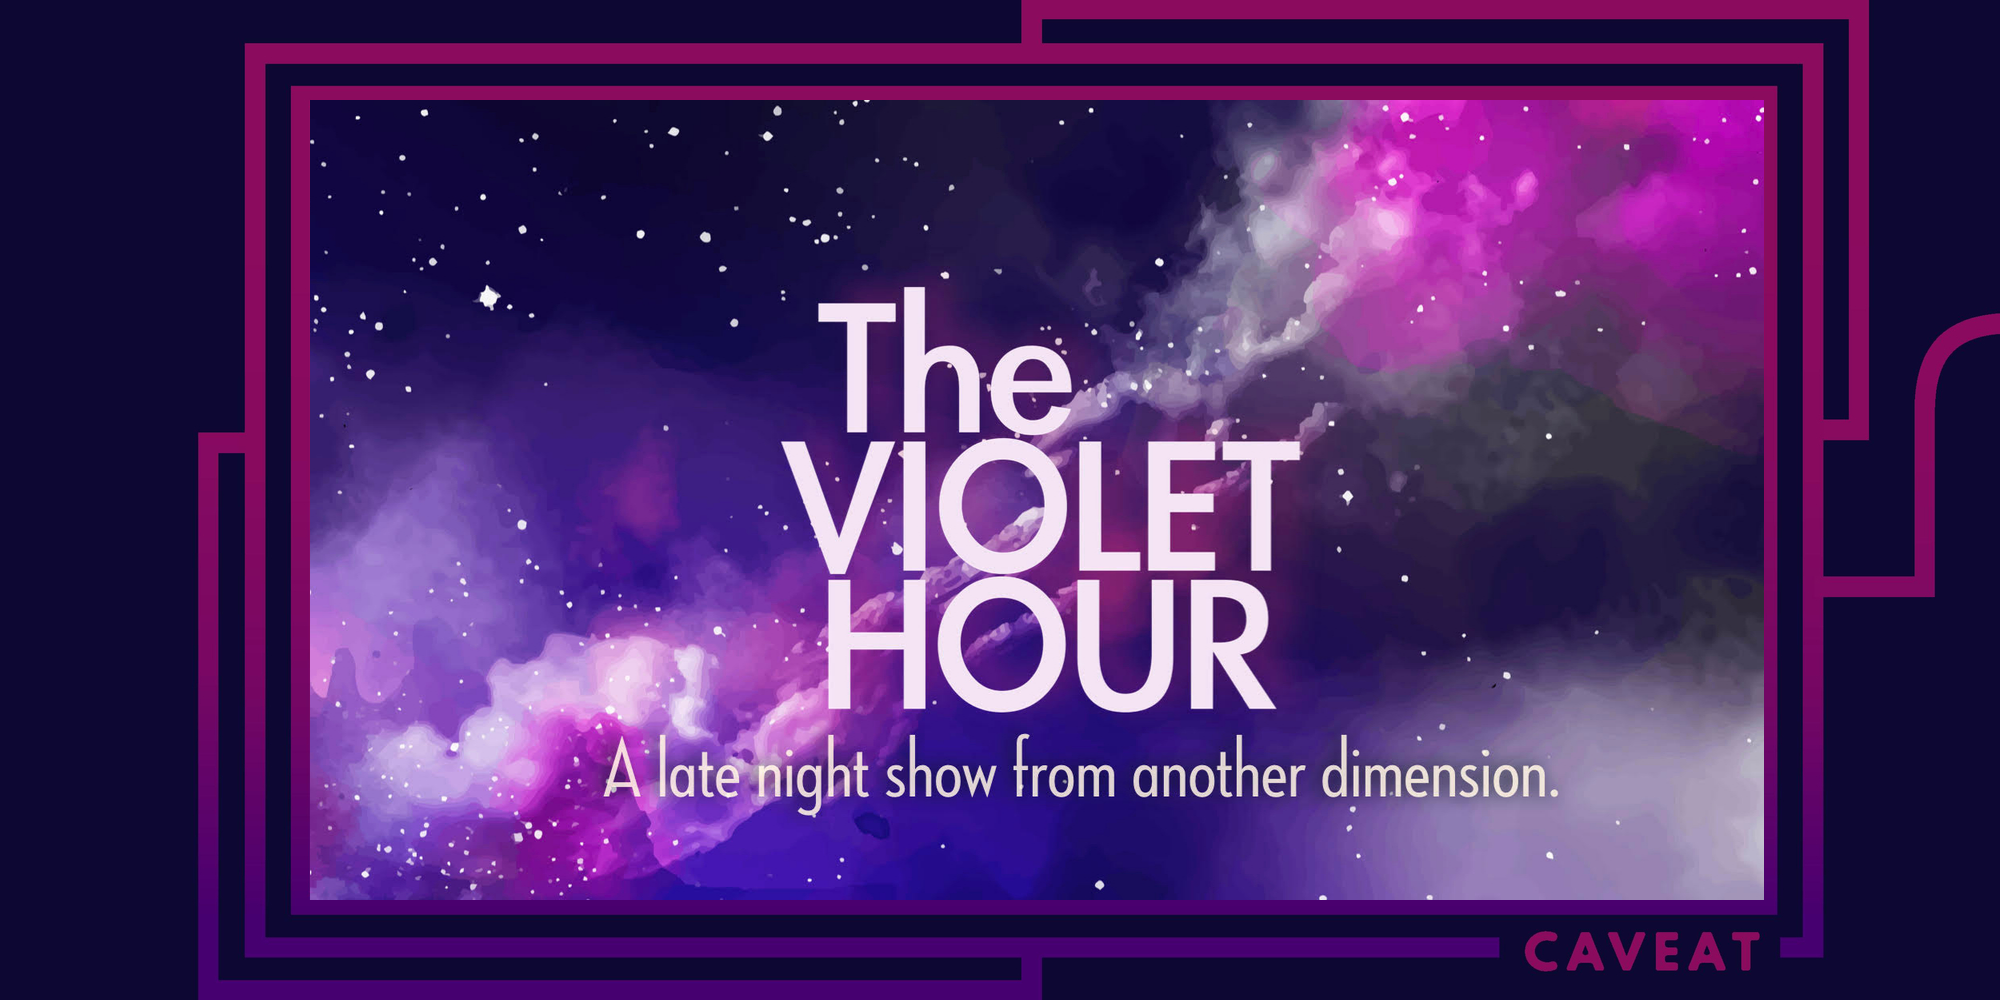 1937 image - The Violet Hour: A Late Night Show From Another Dimension